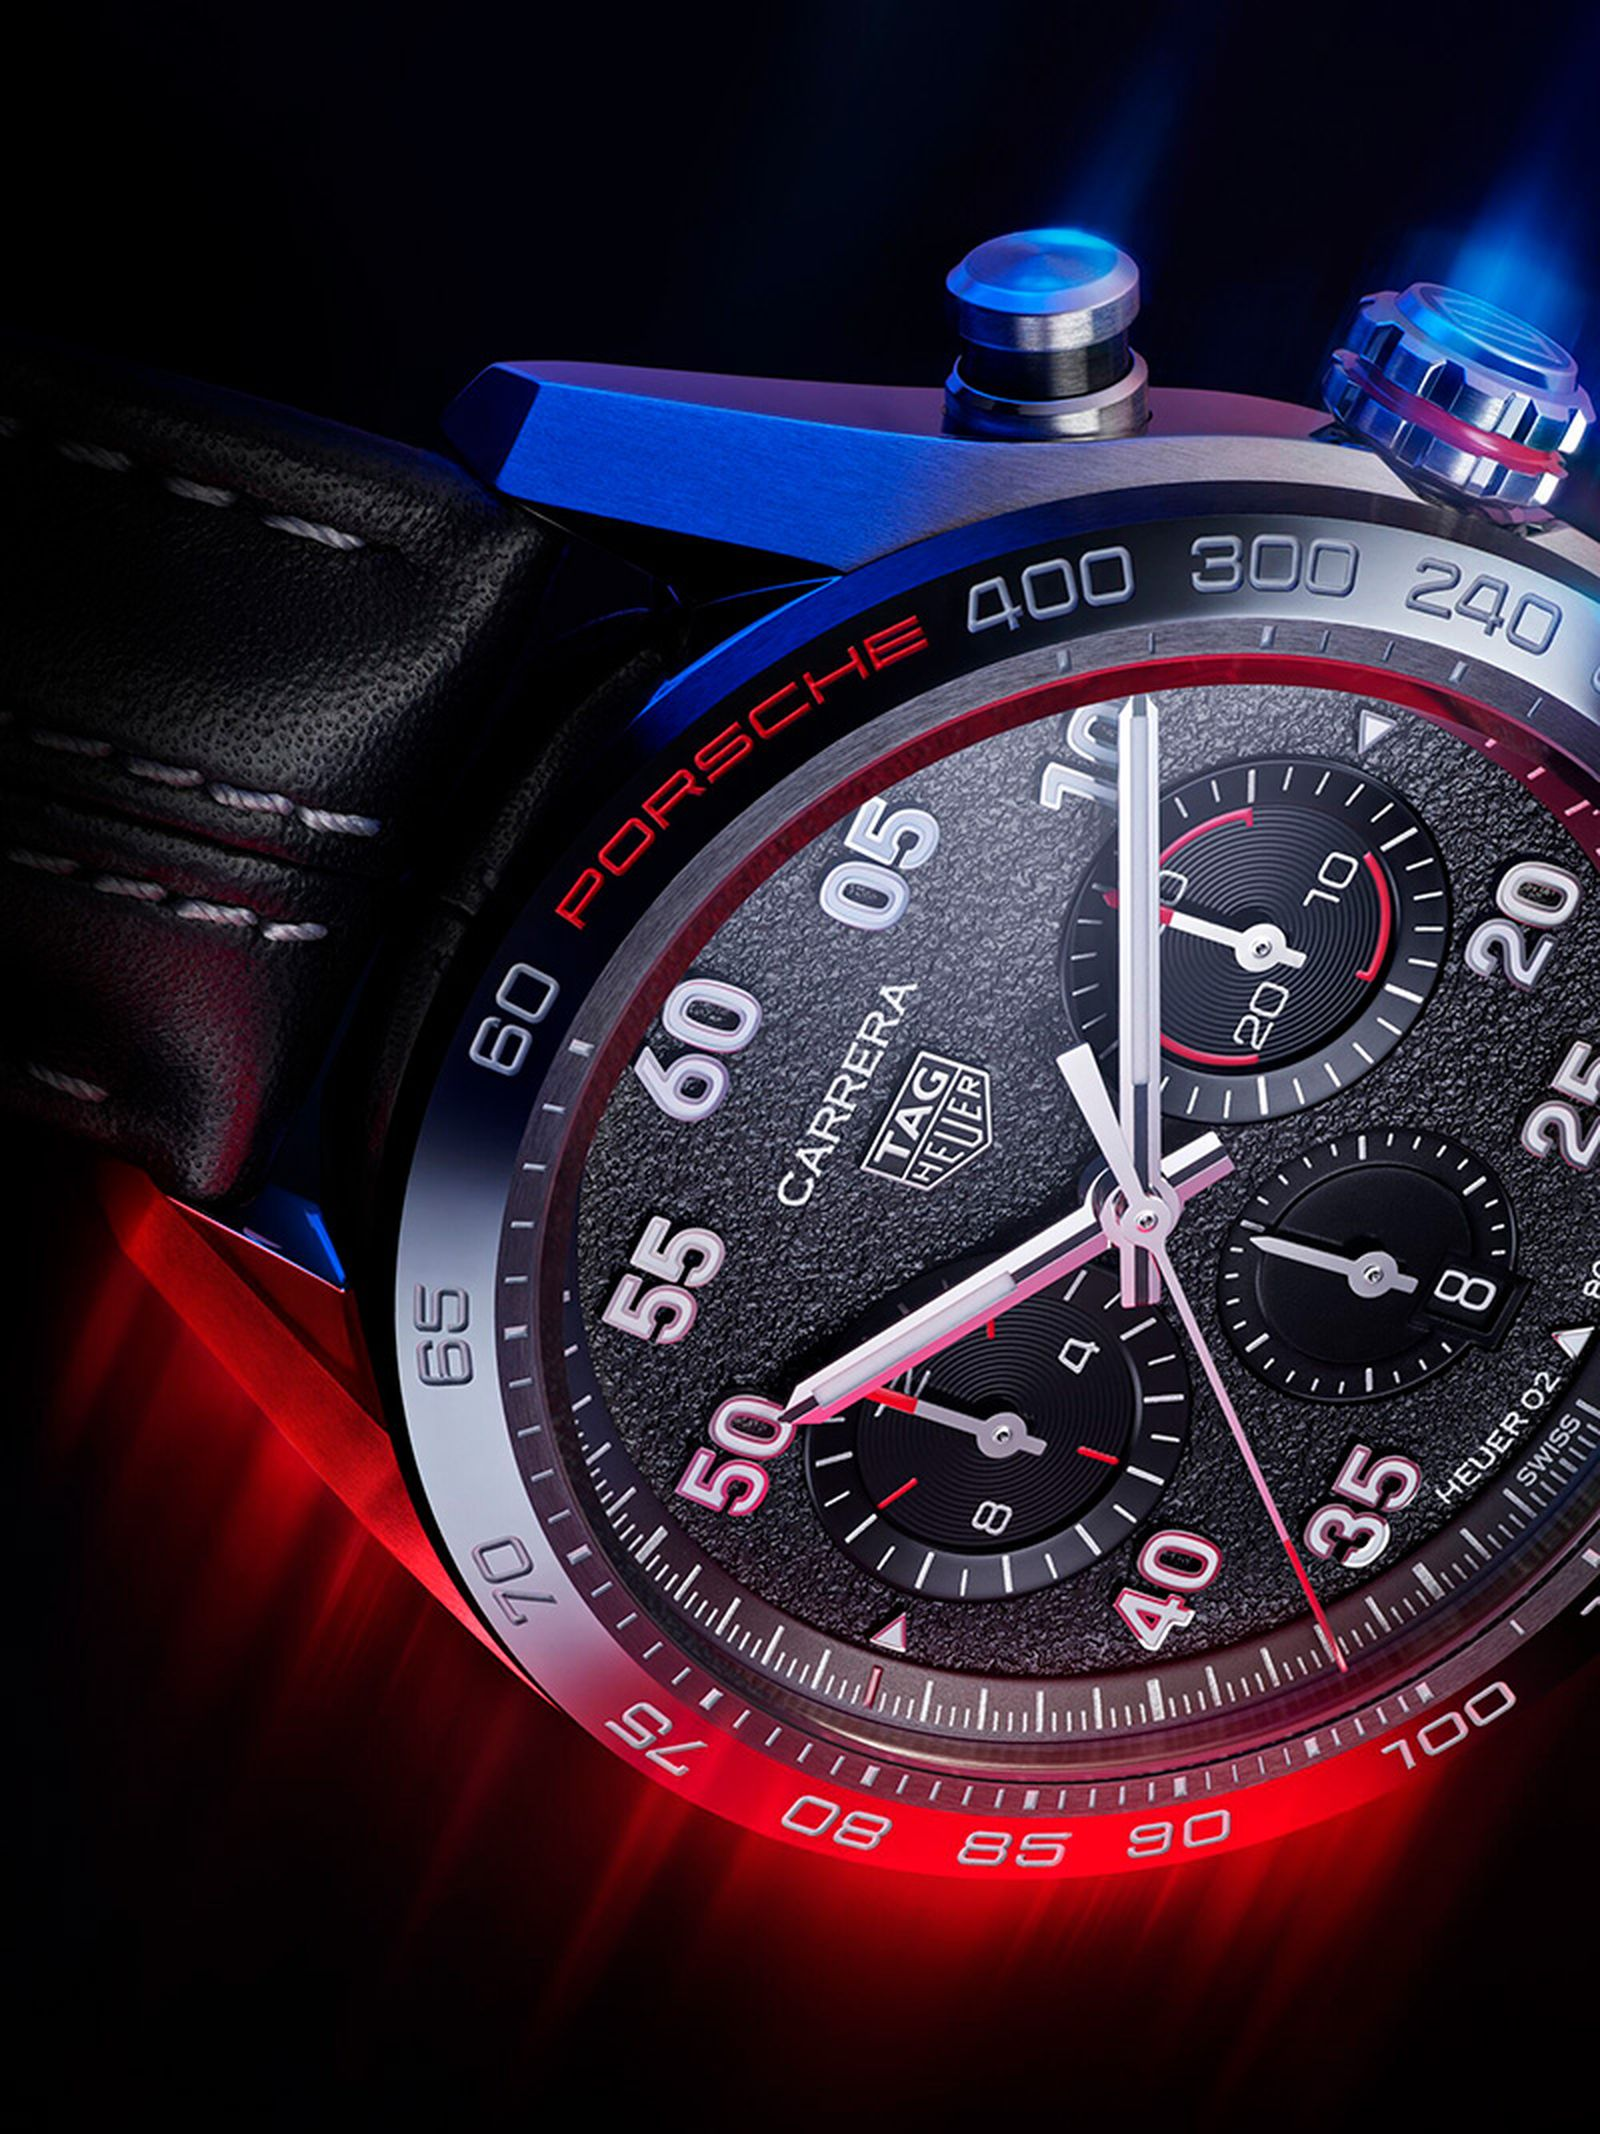 tag-heuer-porsche-carrera-chronograph-watch-detail-04